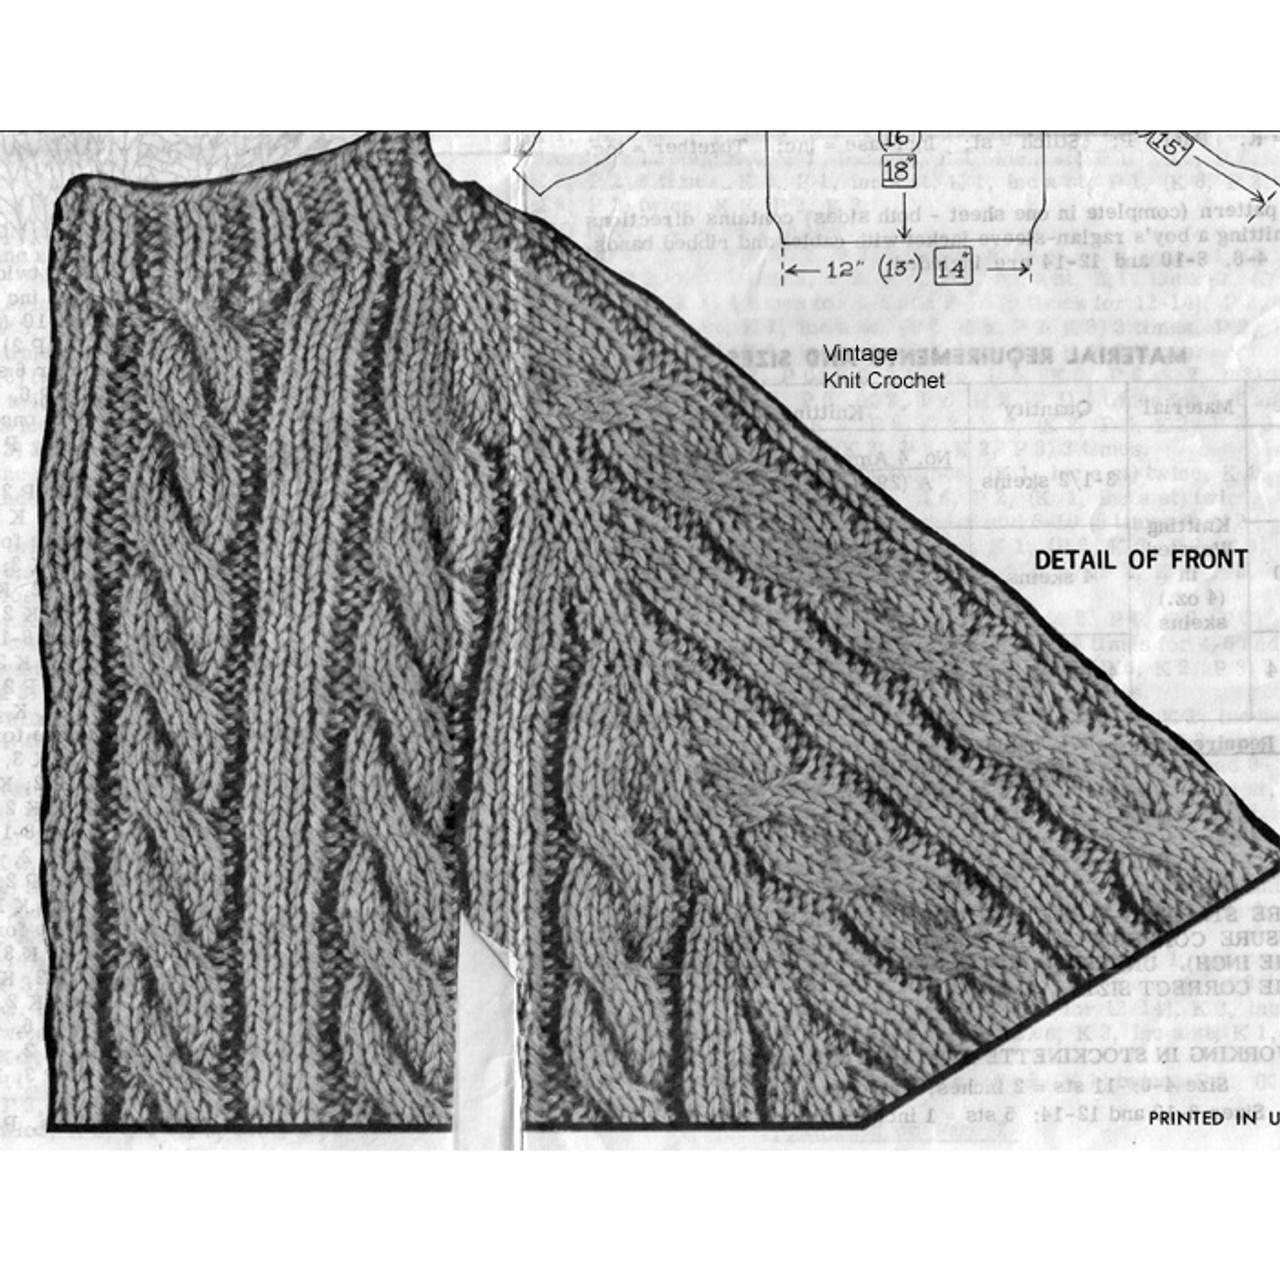 Knitted Cable Stitch Illustration for Childs Jacket